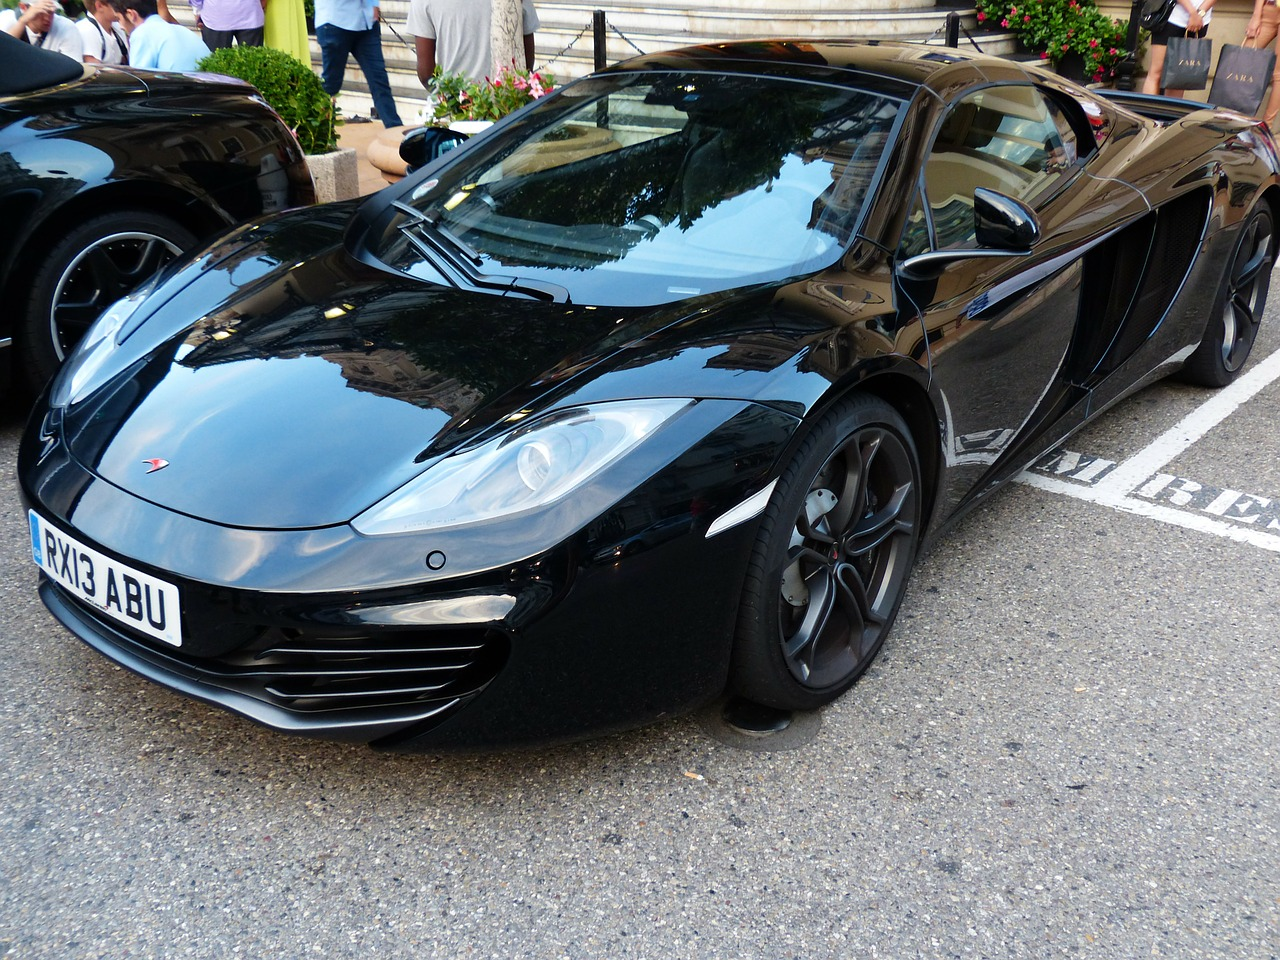 mclaren sports car racing car free photo